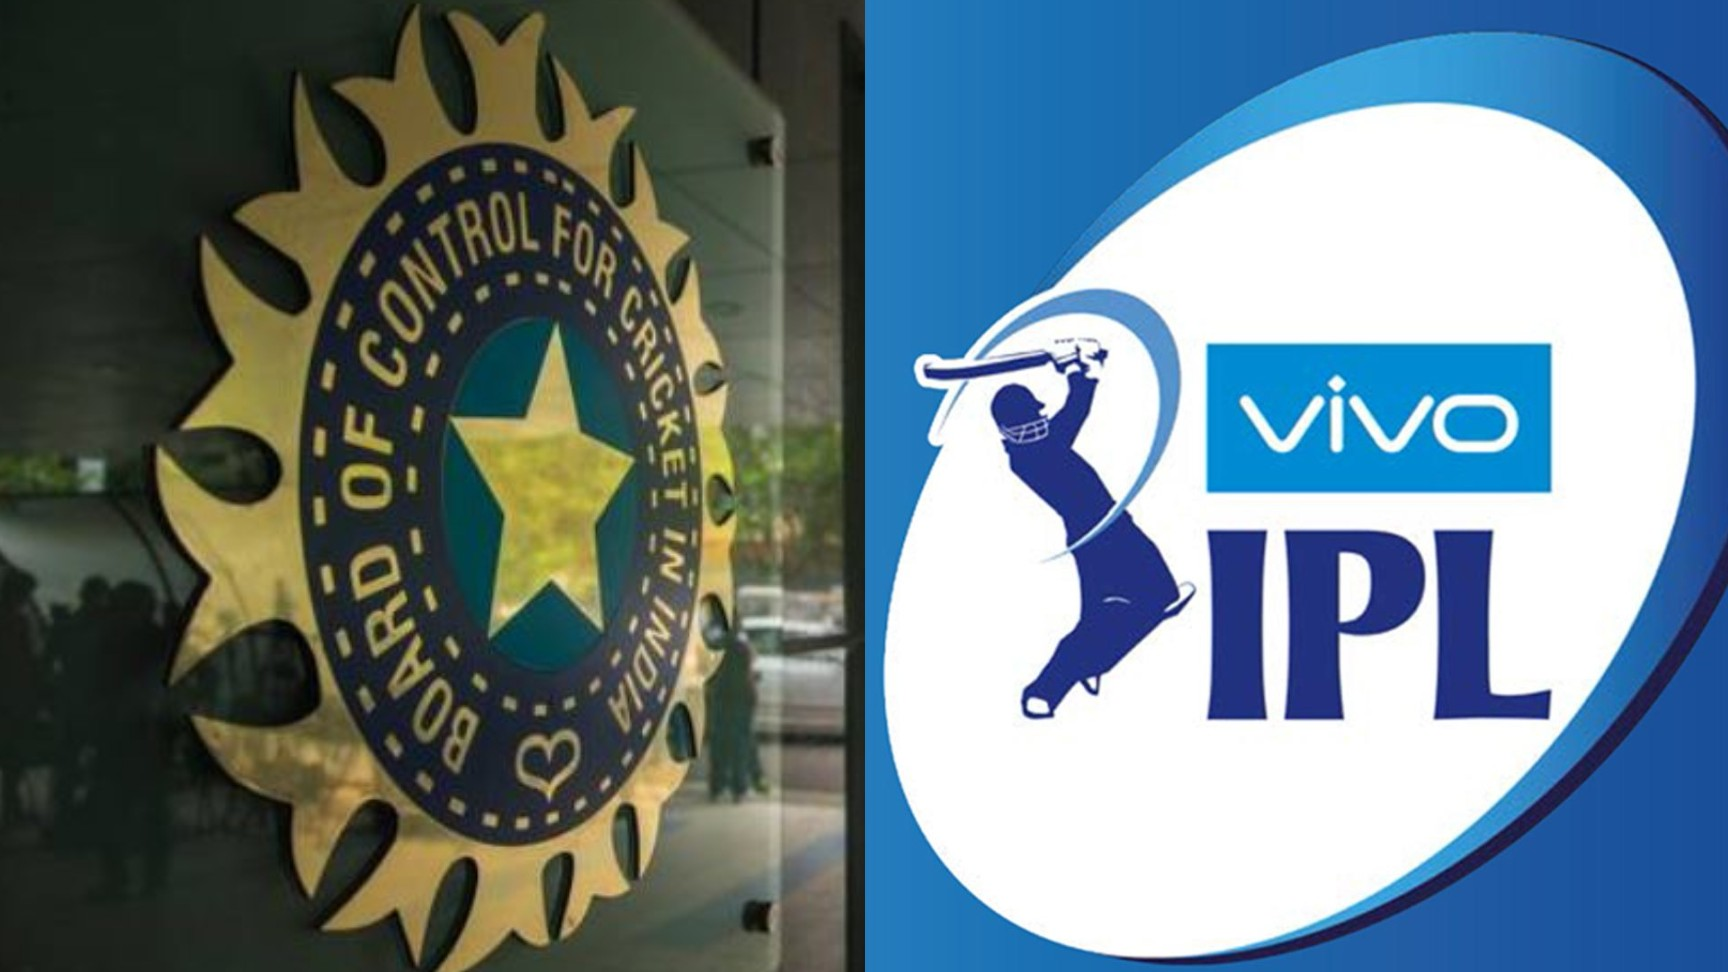 IPL 2020: BCCI and VIVO officially suspend their partnership for IPL 13